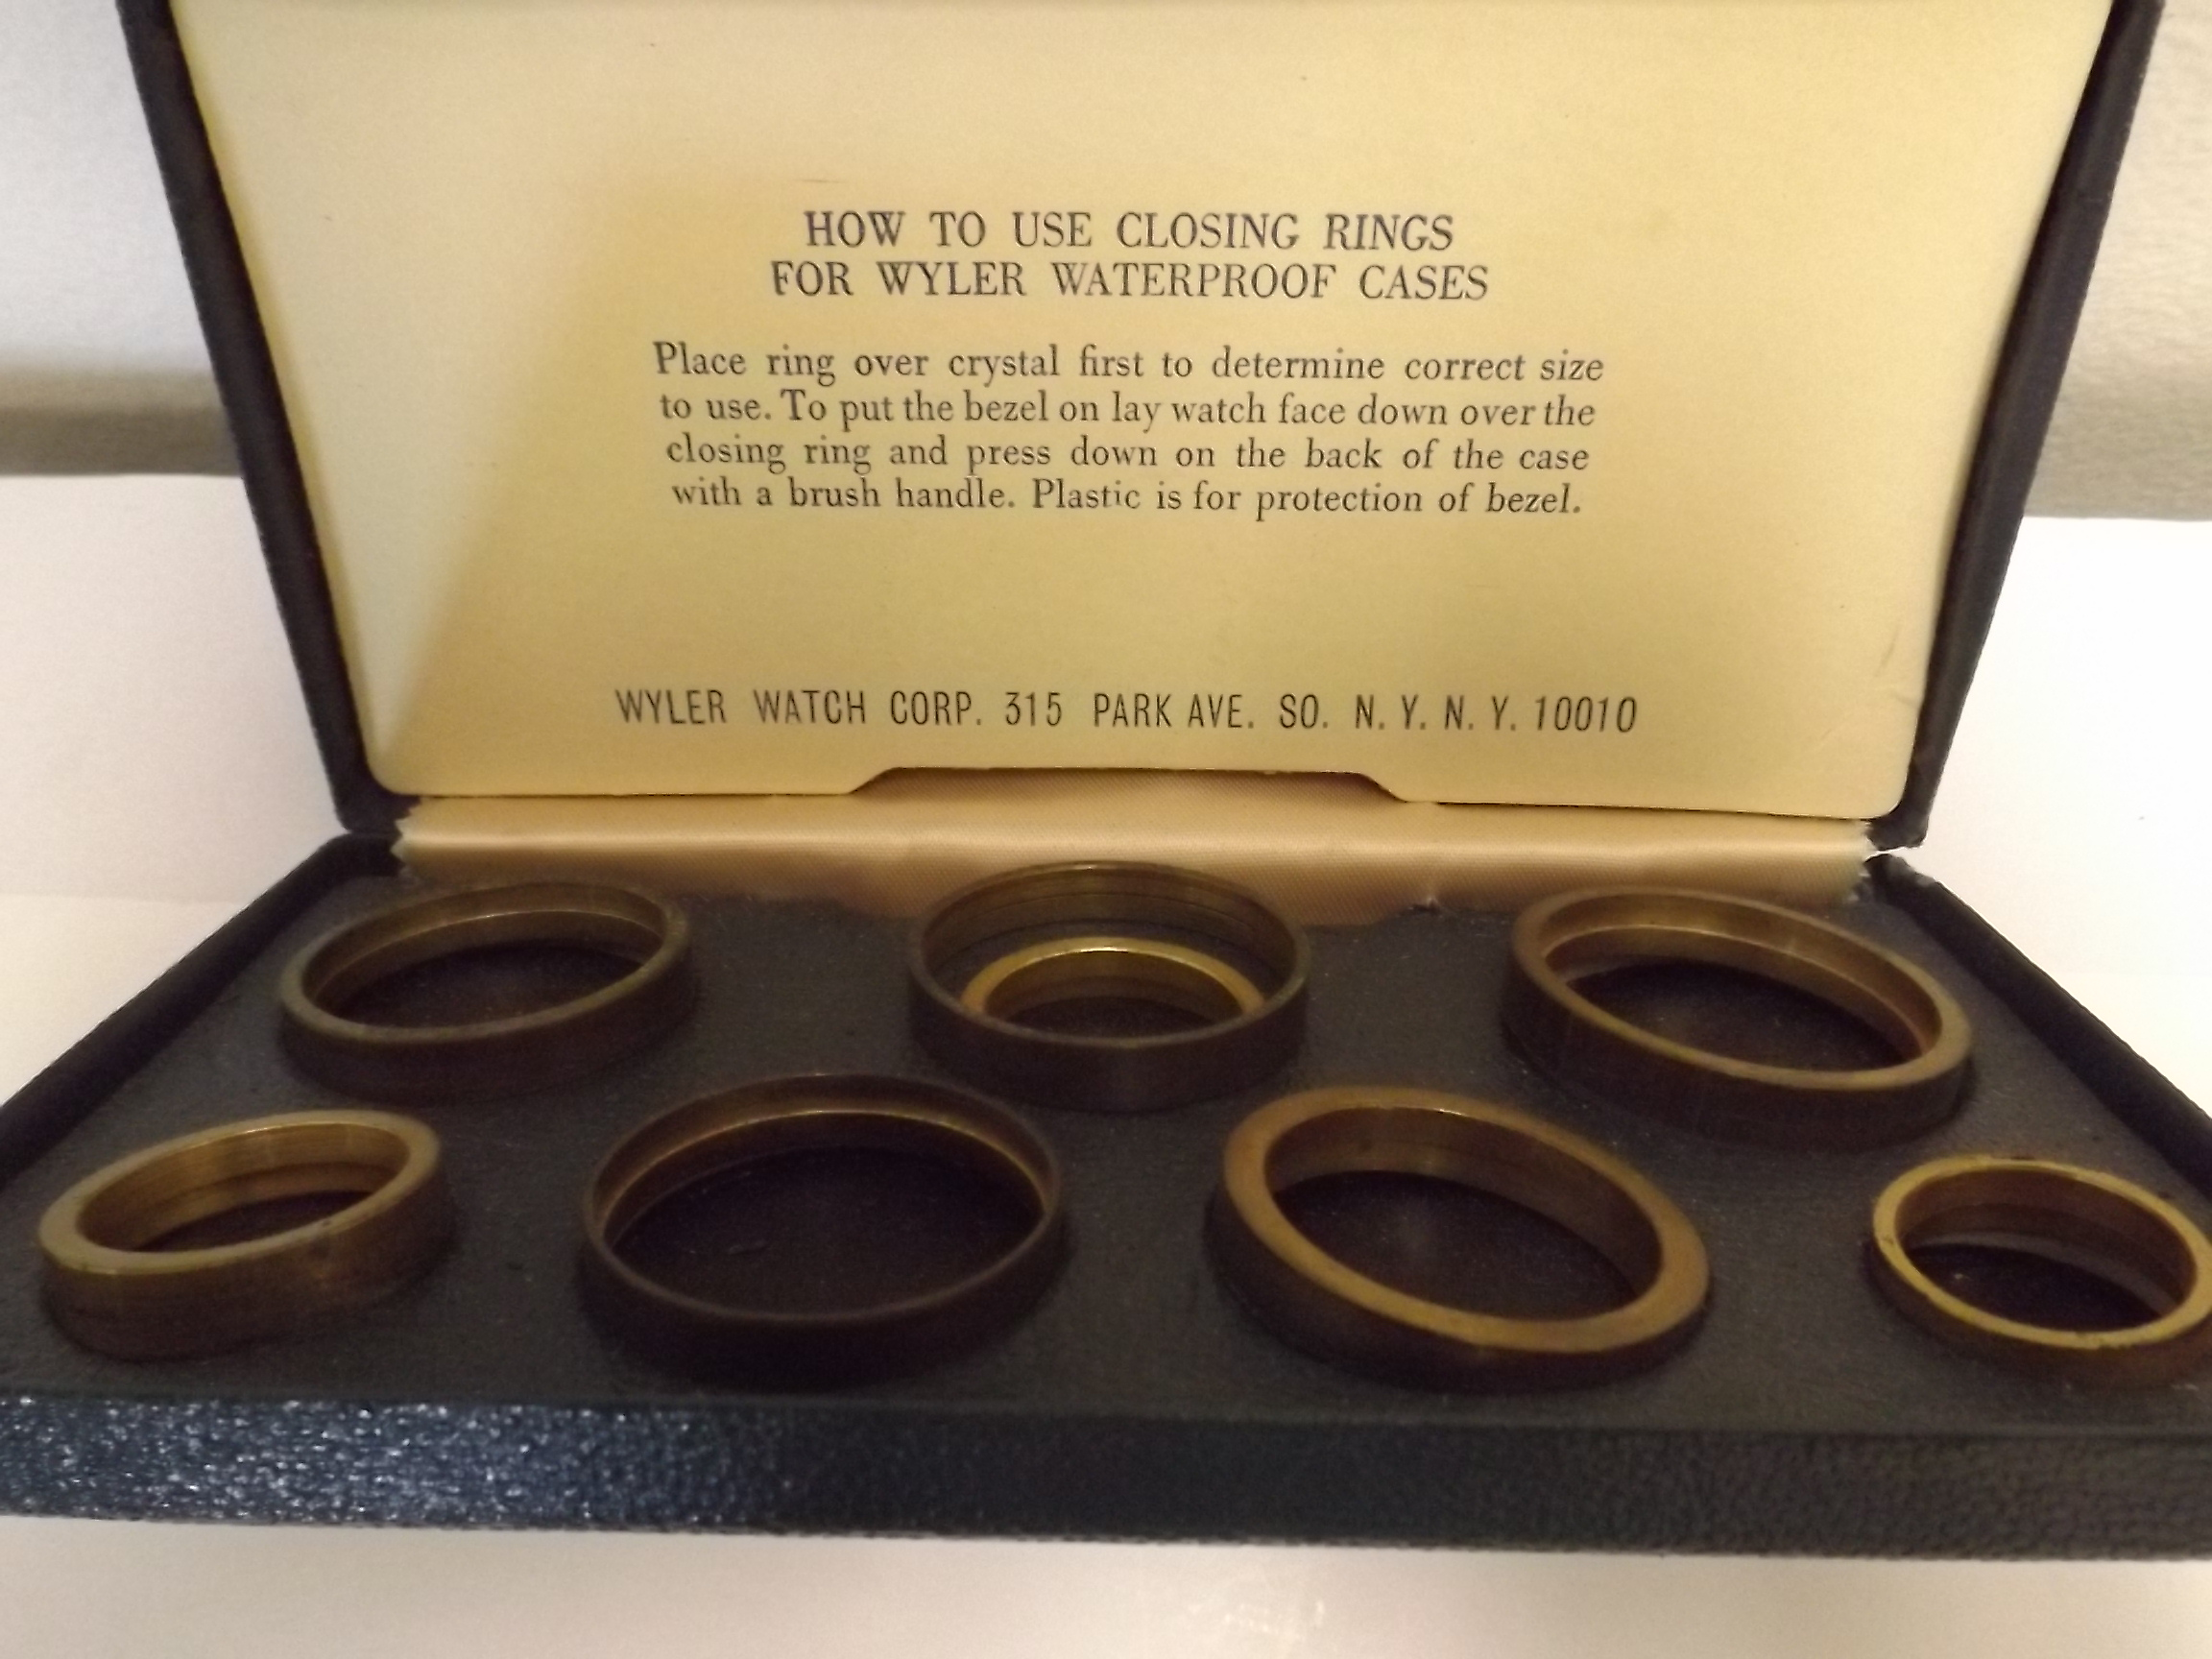 WCC001 Set of Closing Rings for Wyler Waterproof Cases--One only!